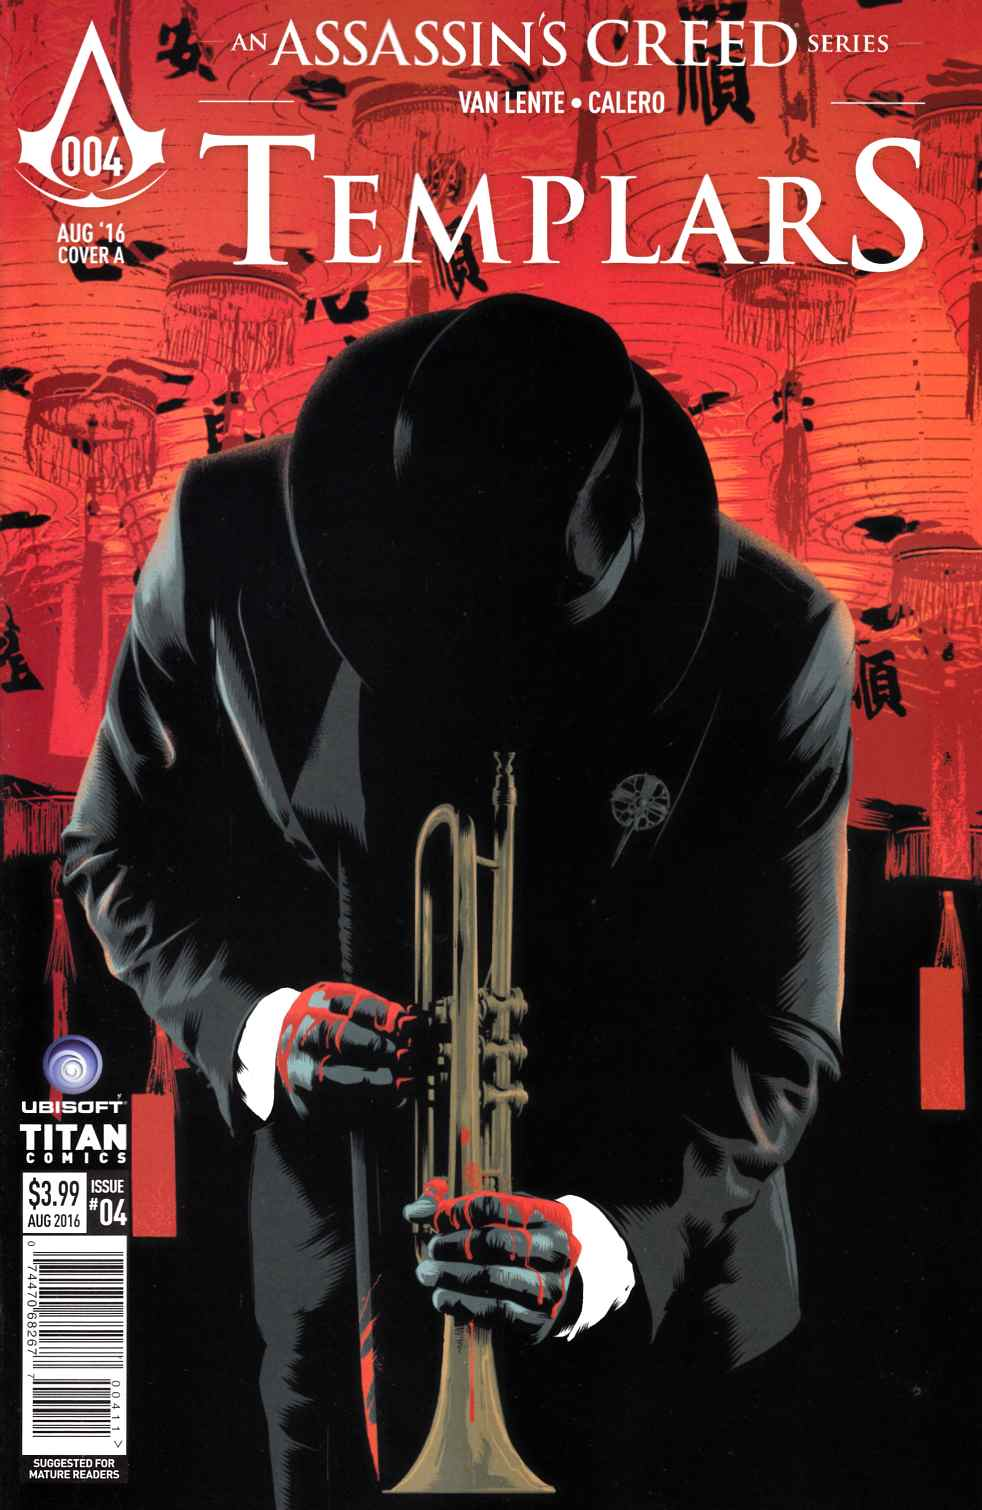 Assassins Creed Templars #4 Cover A [Titan Comic] THUMBNAIL